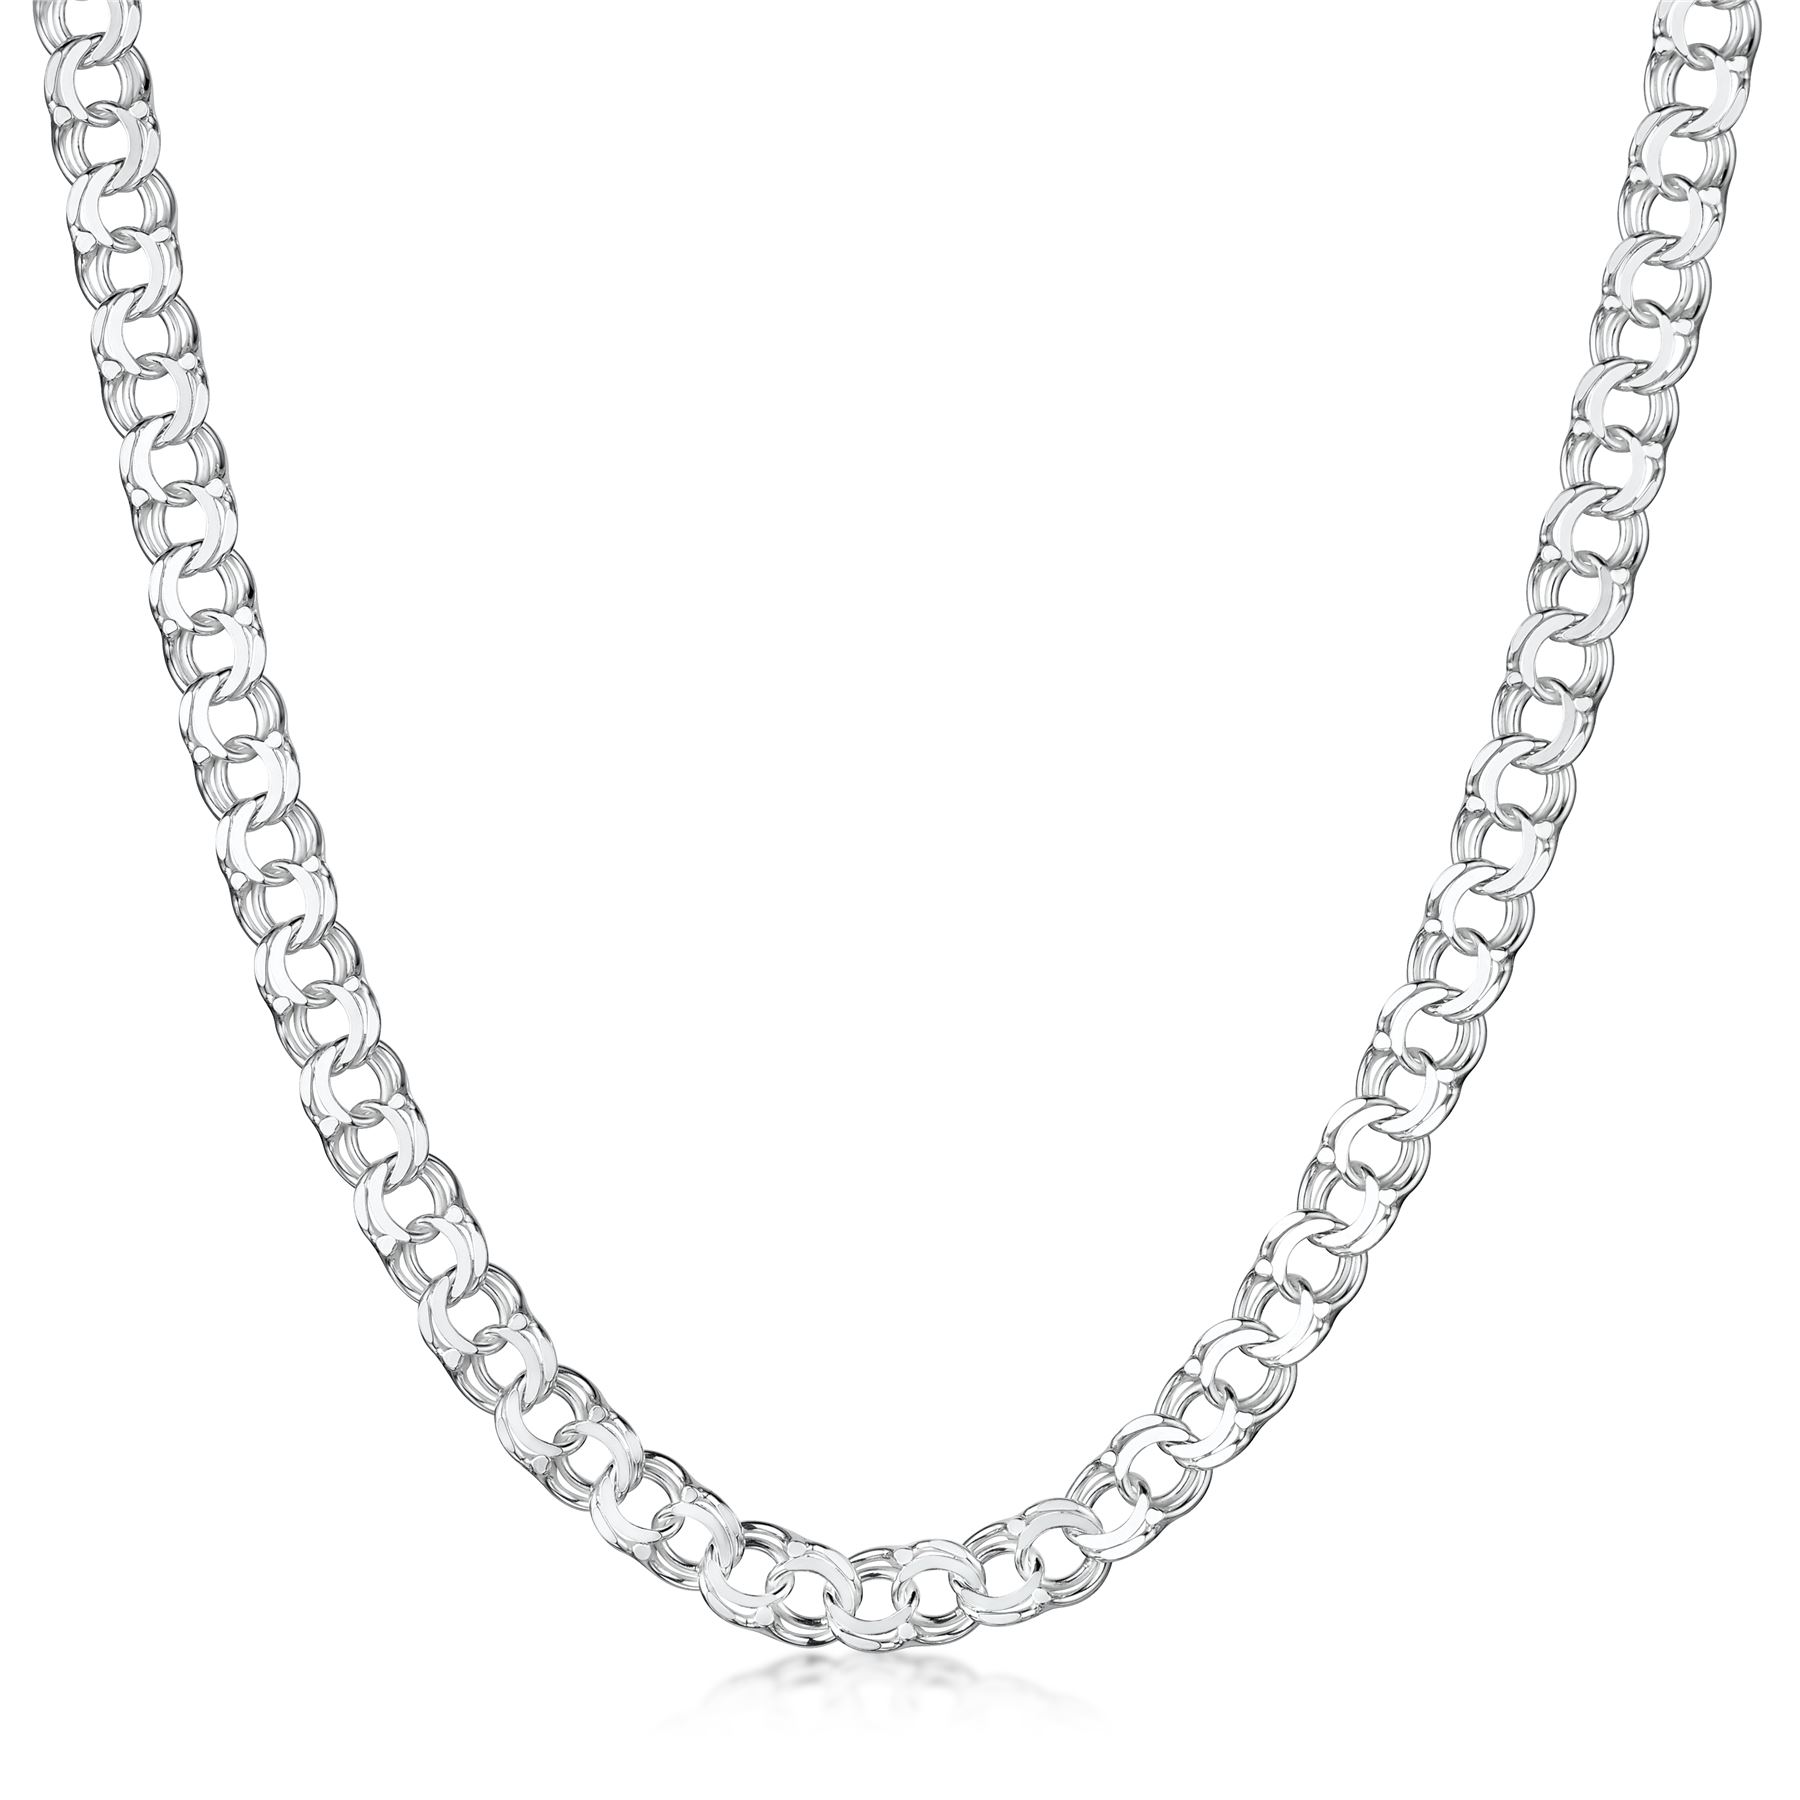 Amberta-Genuine-Real-925-Sterling-Silver-Long-Curb-Necklace-Chain-Made-in-Italy thumbnail 18